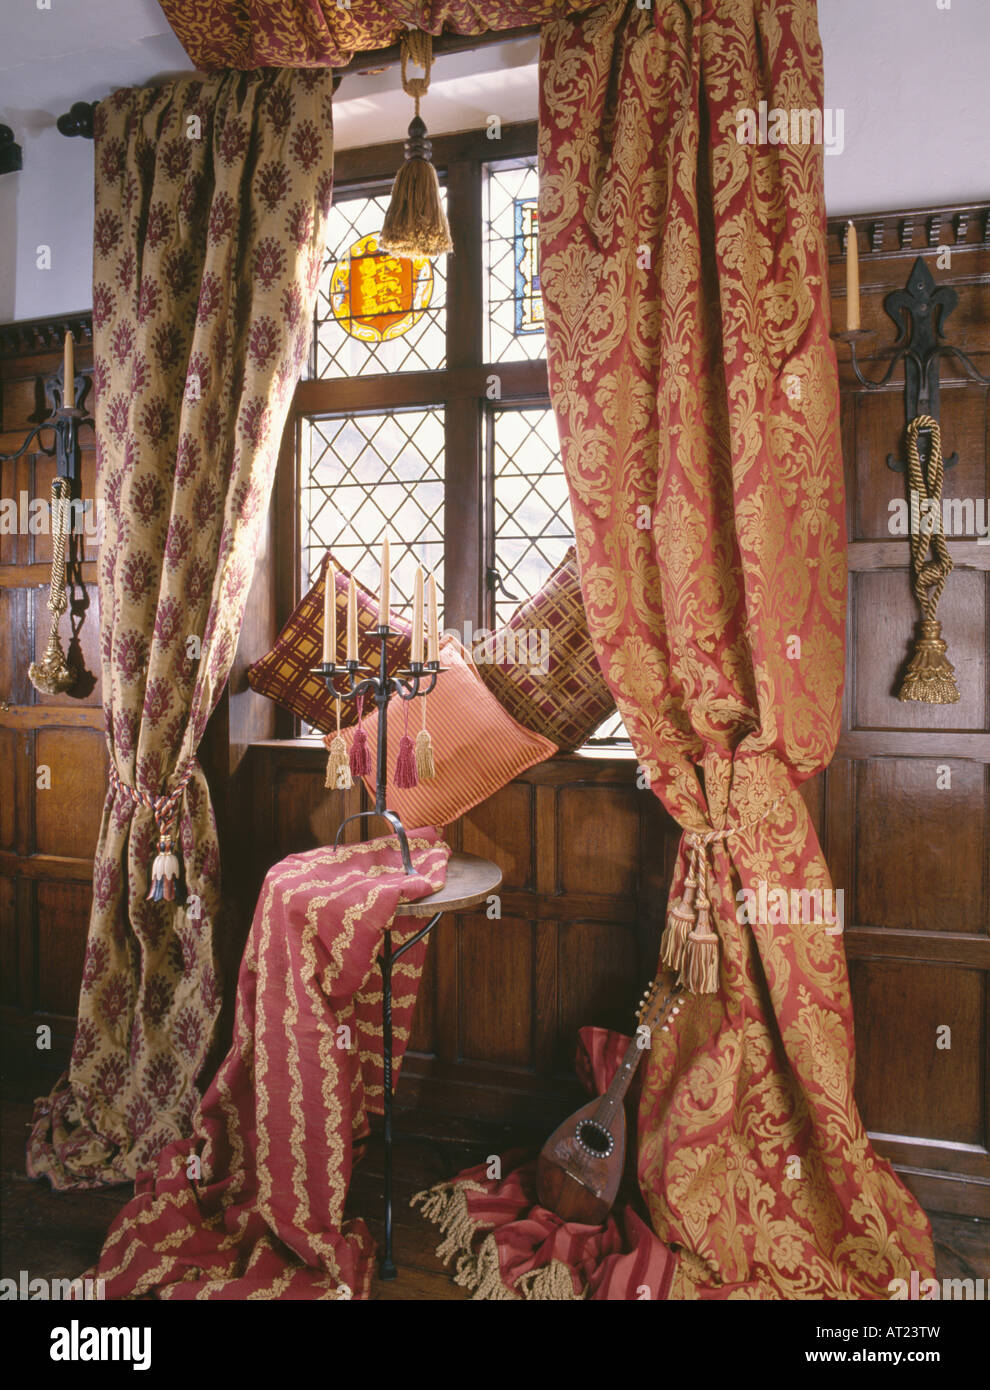 Damask curtains living room - Damask Curtains In Different Patterns At Lattice Window With Stained Glass Panel In Country Living Room